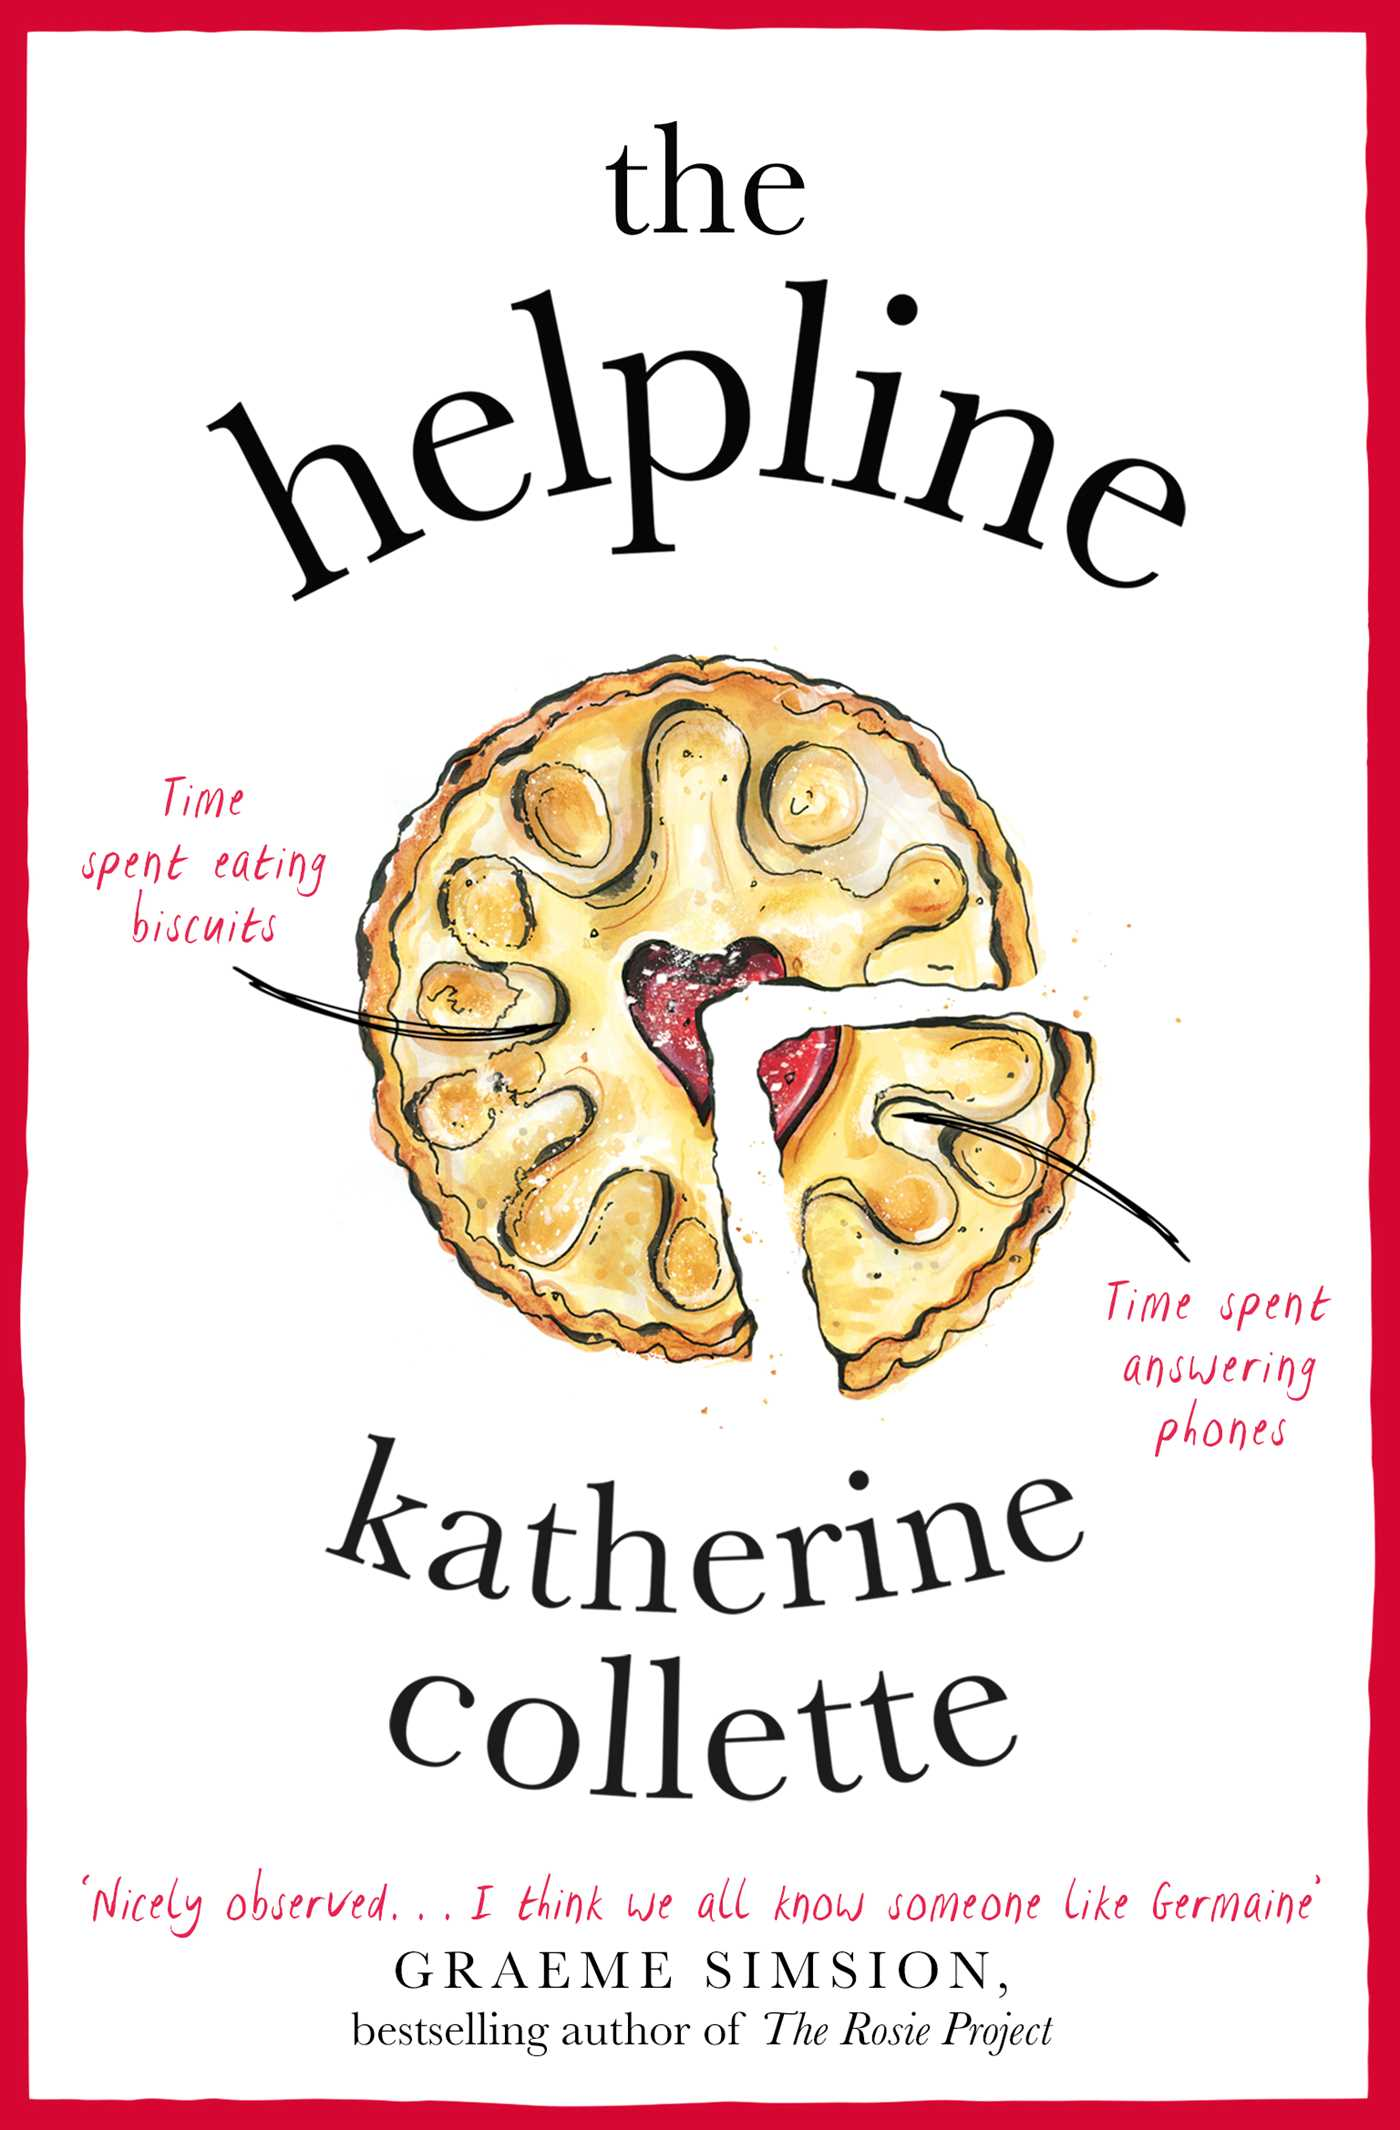 Watch Hillary Katherines Favourite Things For September video